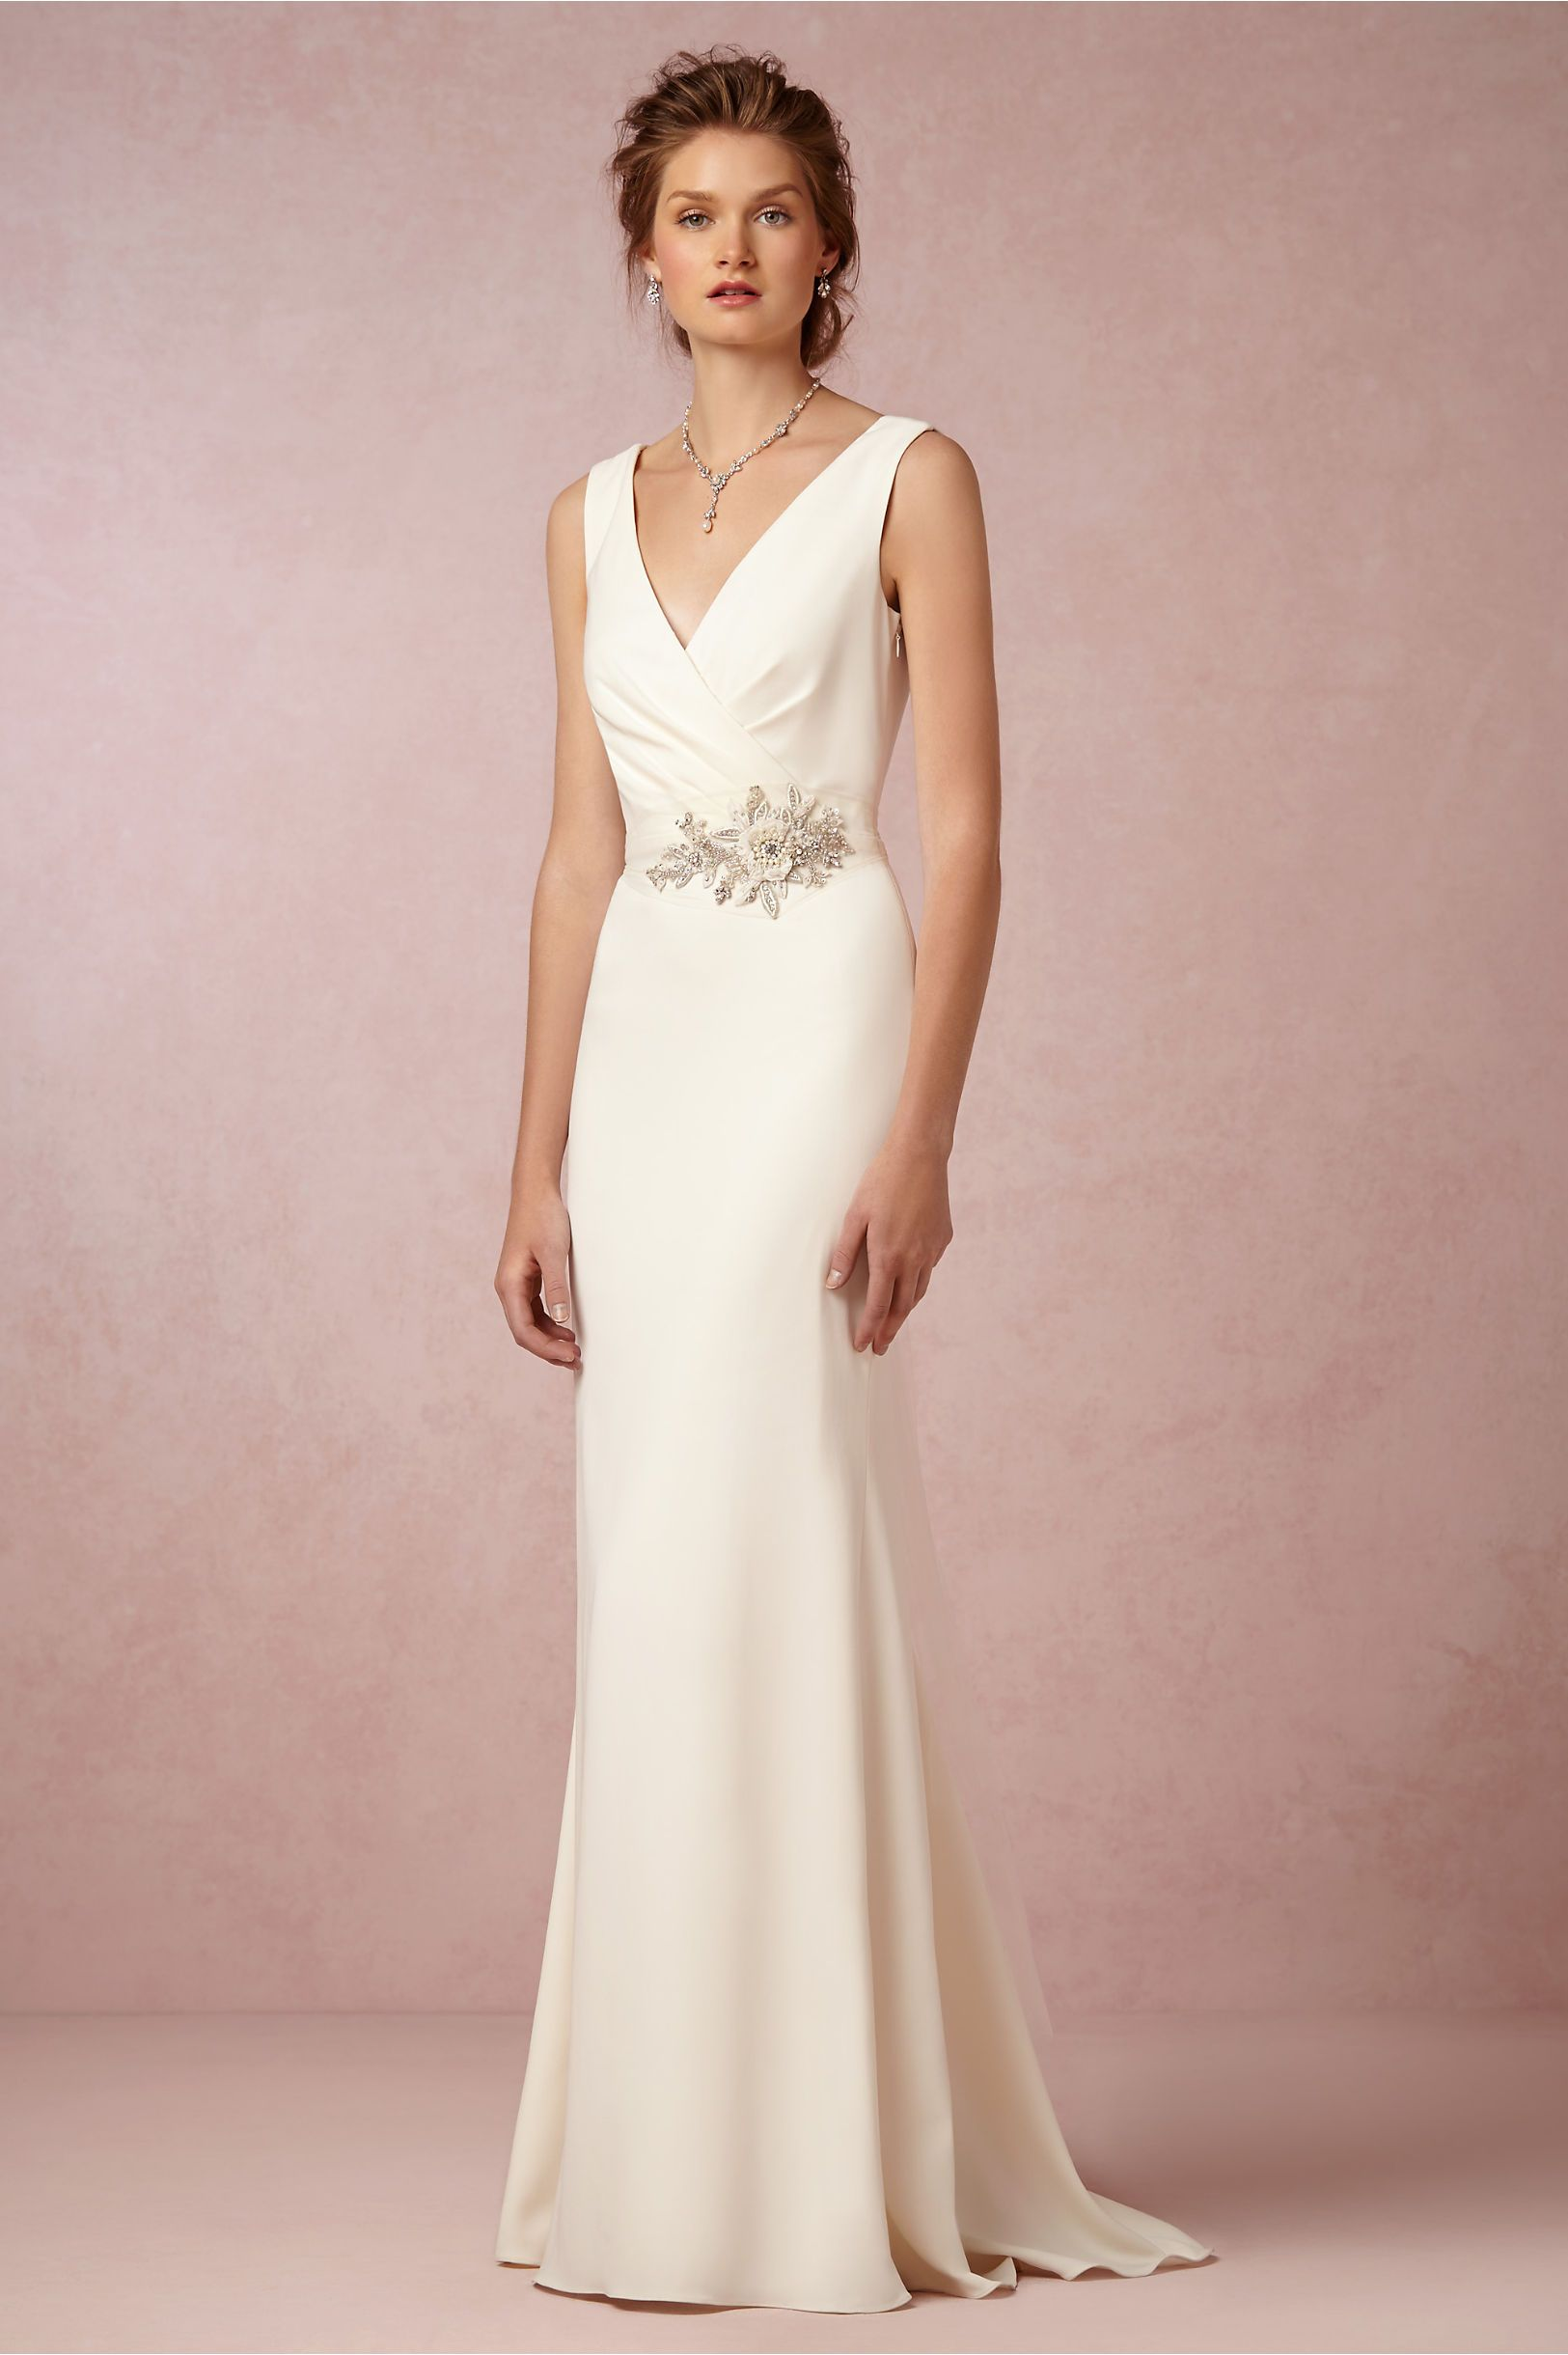 Livia Gown from BHLDN | Lane Nuptials Style | Pinterest | Novios ...